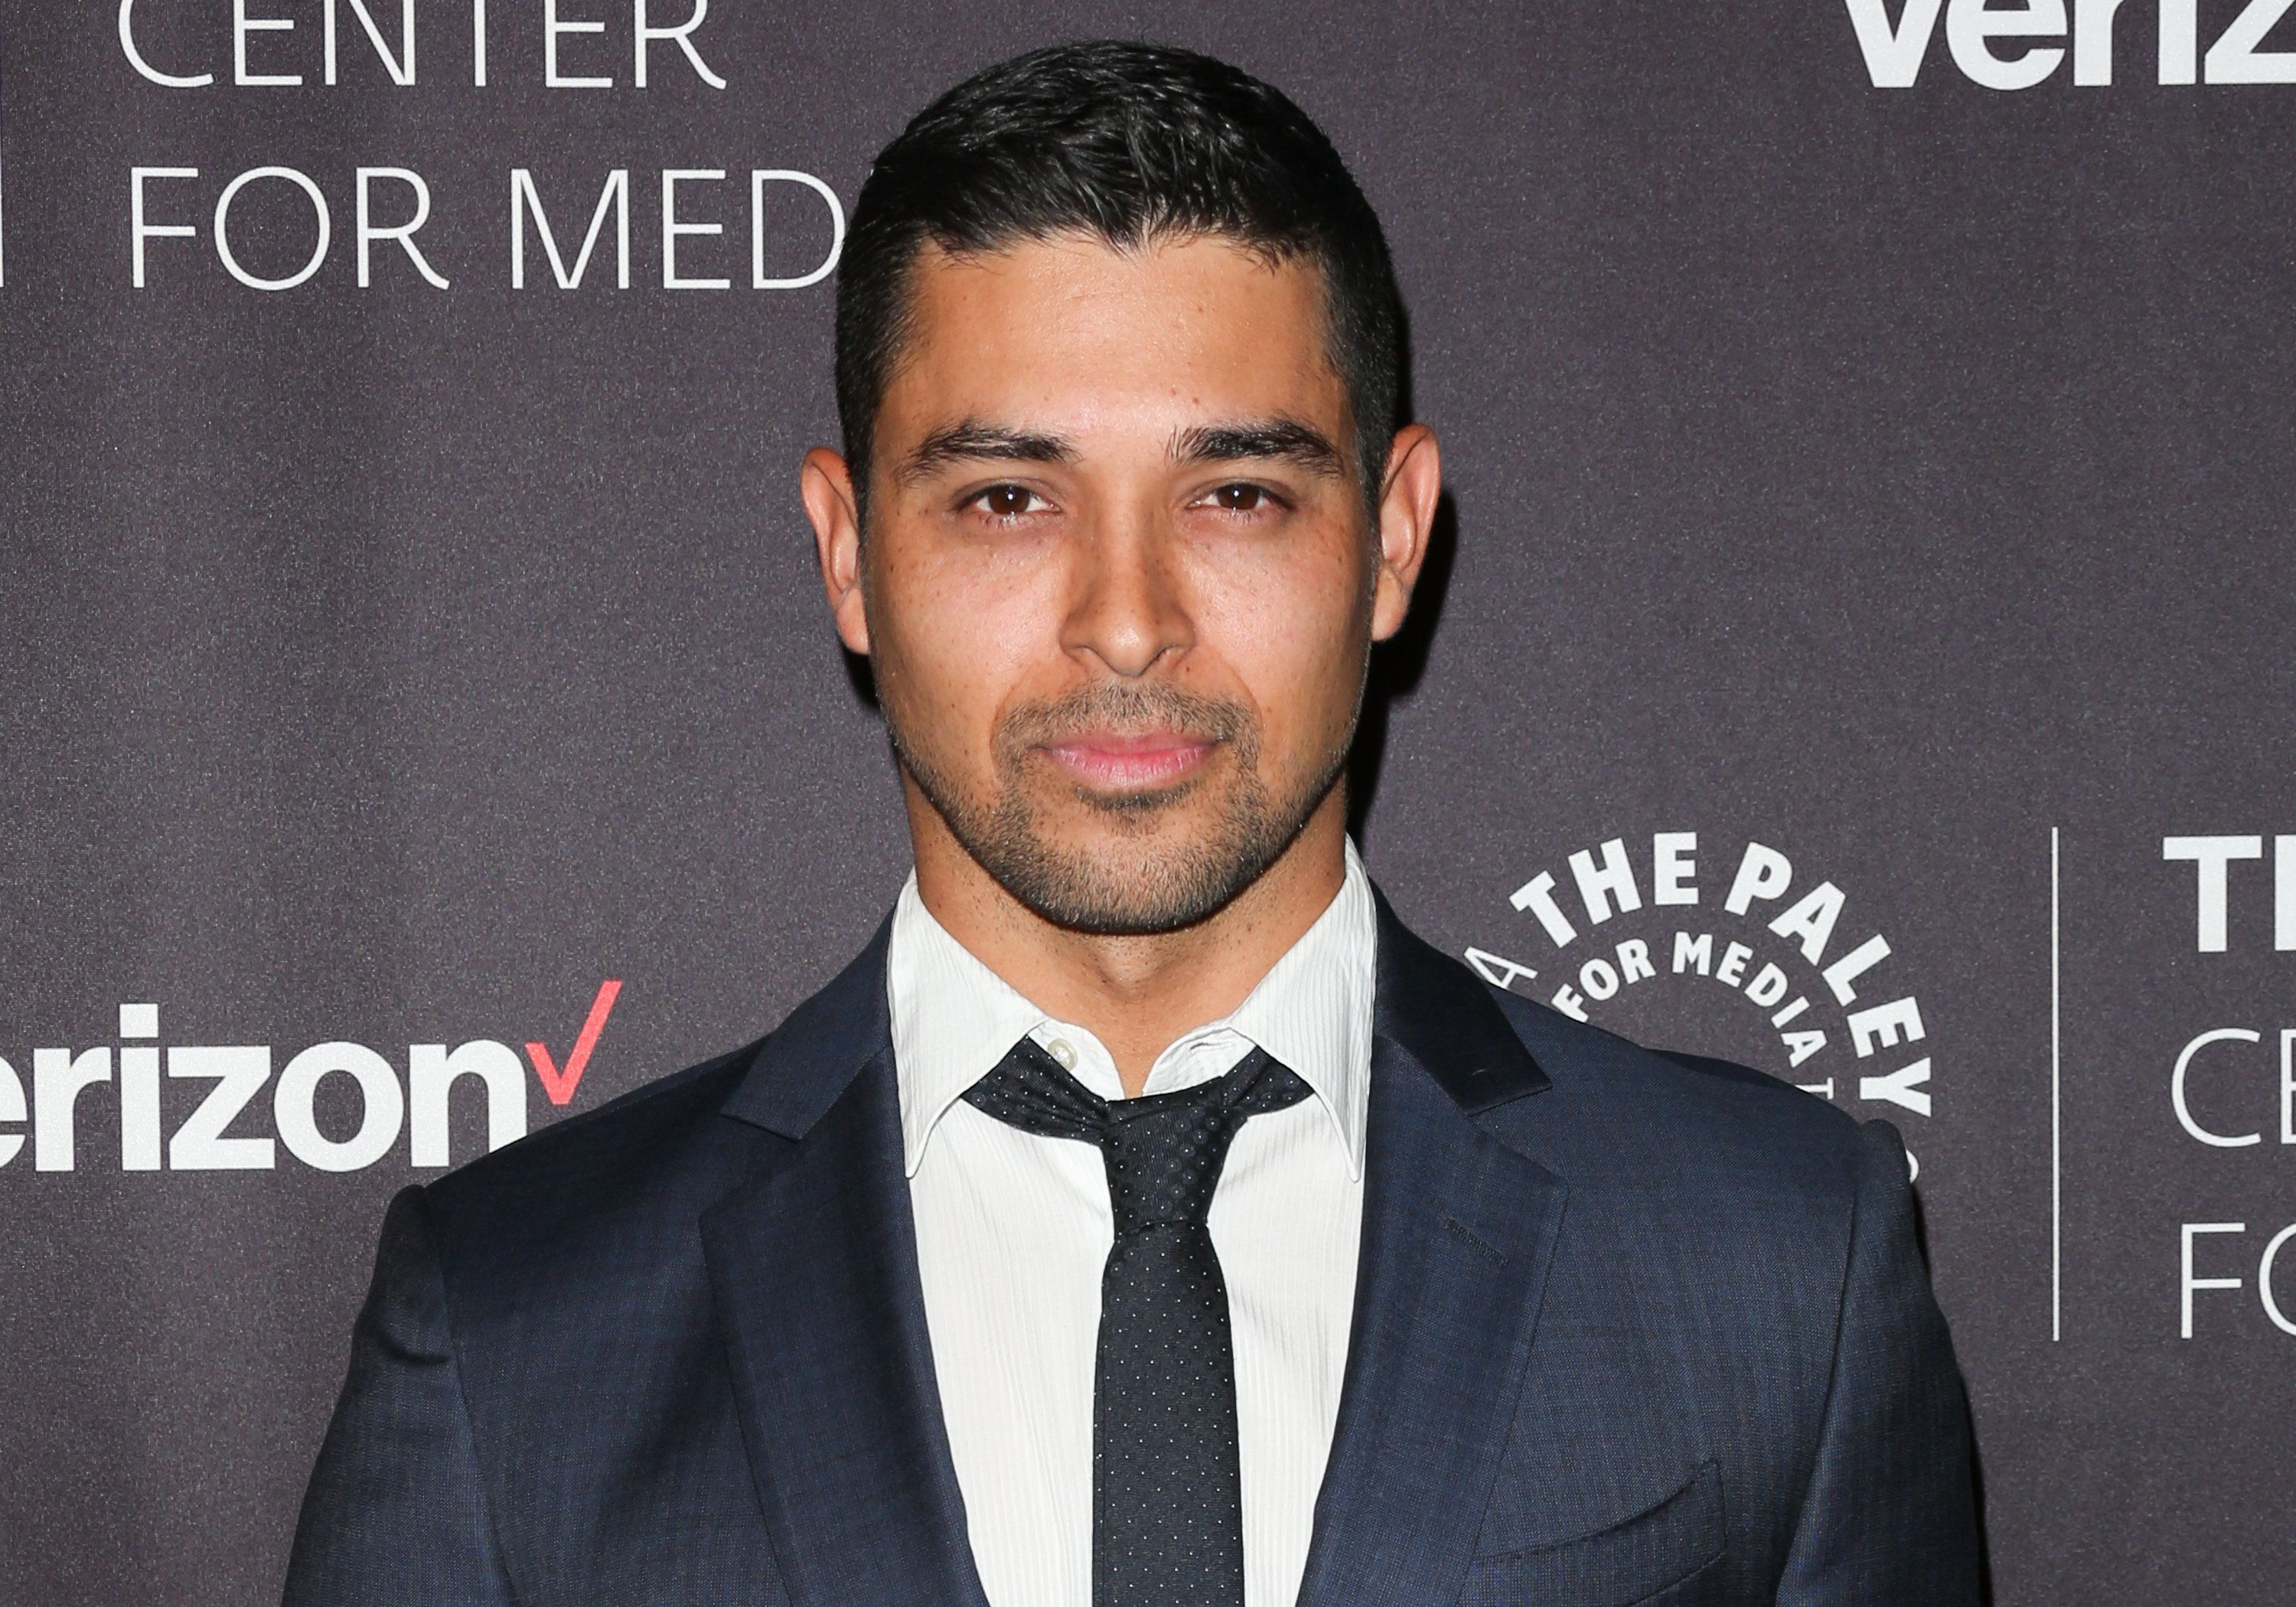 BEVERLY HILLS, CA - OCTOBER 24:  Actor Wilmer Valderrama attends The Paley Center for Media's Hollywood tribute to Hispanic achievements in television at the Beverly Wilshire Four Seasons Hotel on October 24, 2016 in Beverly Hills, California.  (Photo by Paul Archuleta/FilmMagic)